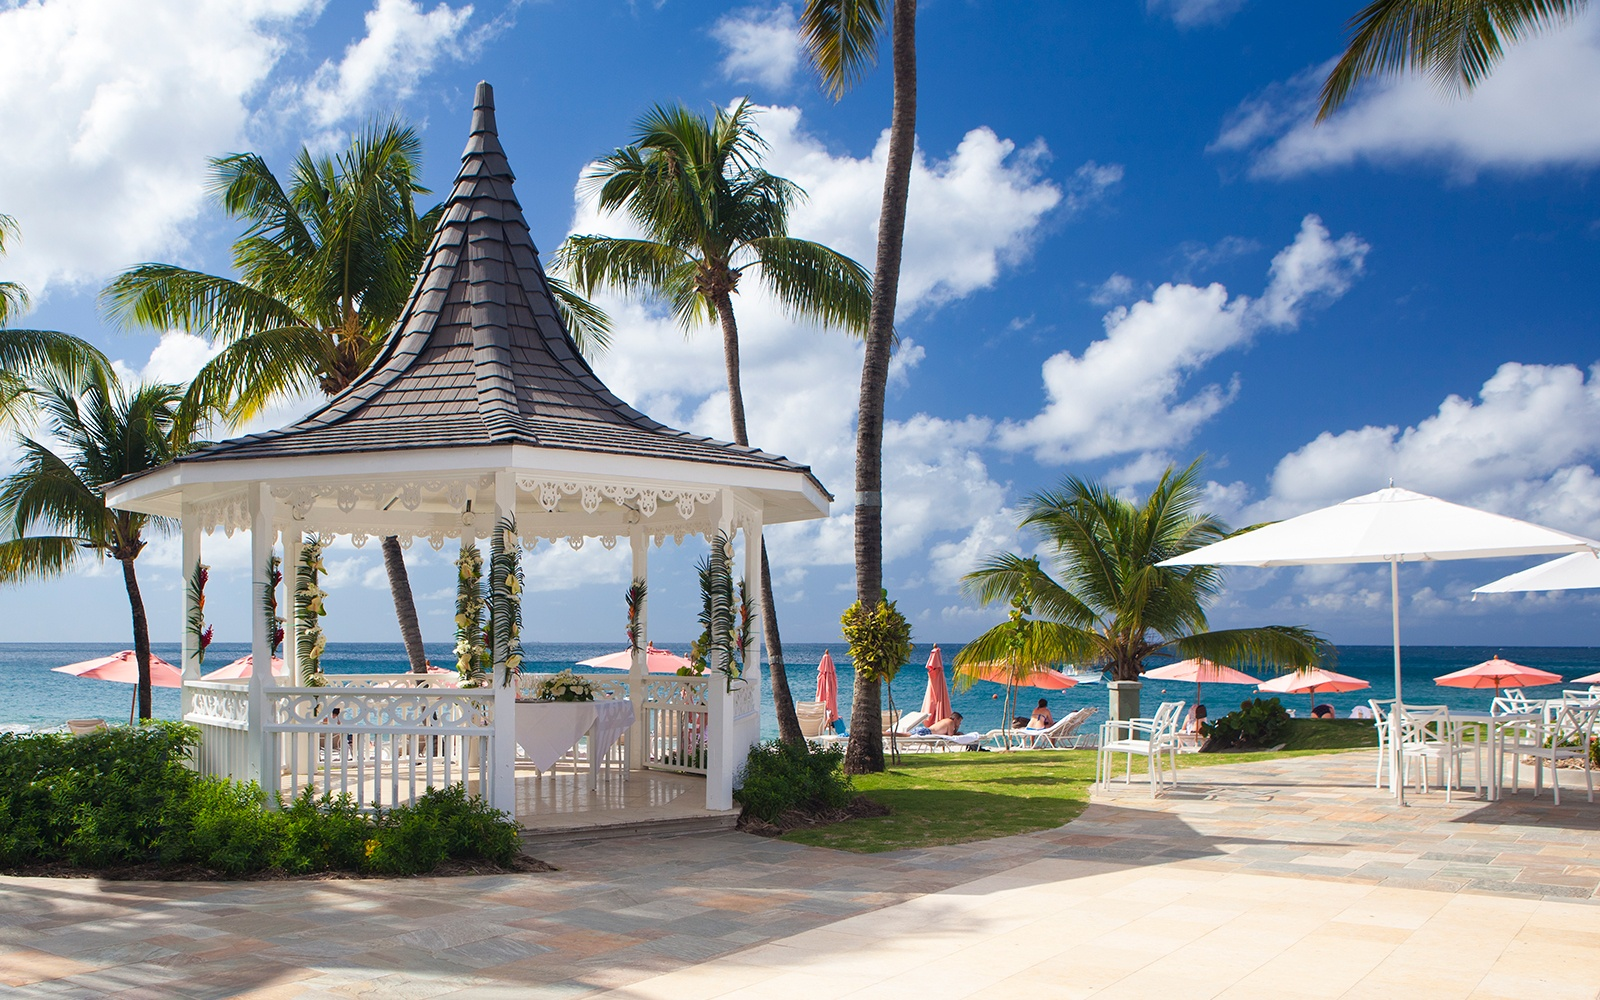 gazebo at The BodyHoliday resort in LeSport, St. Lucia